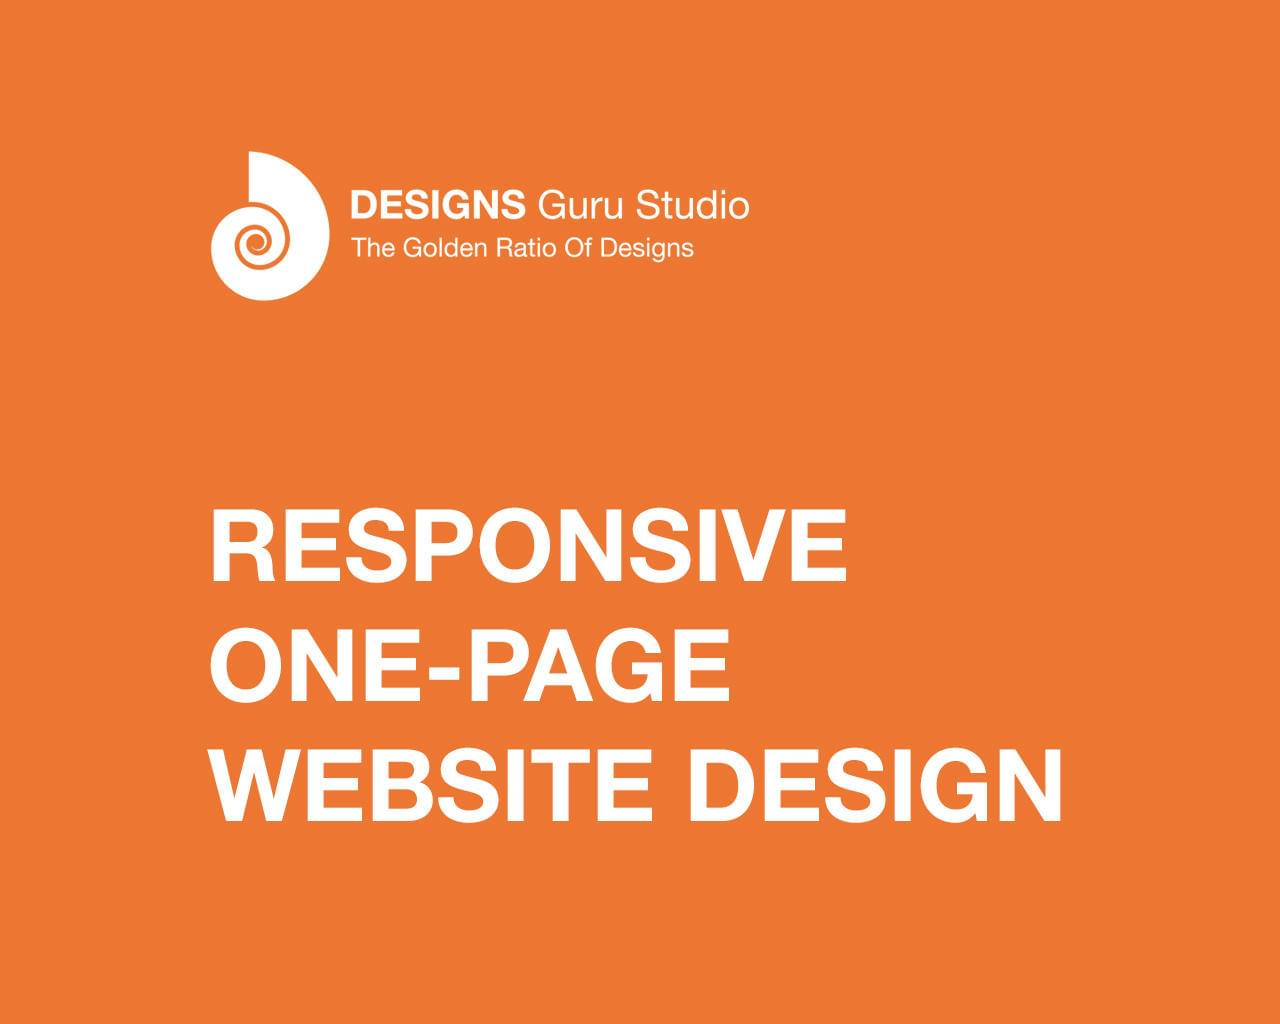 Responsive One-Page Website Design by designsgurustudio - 115416